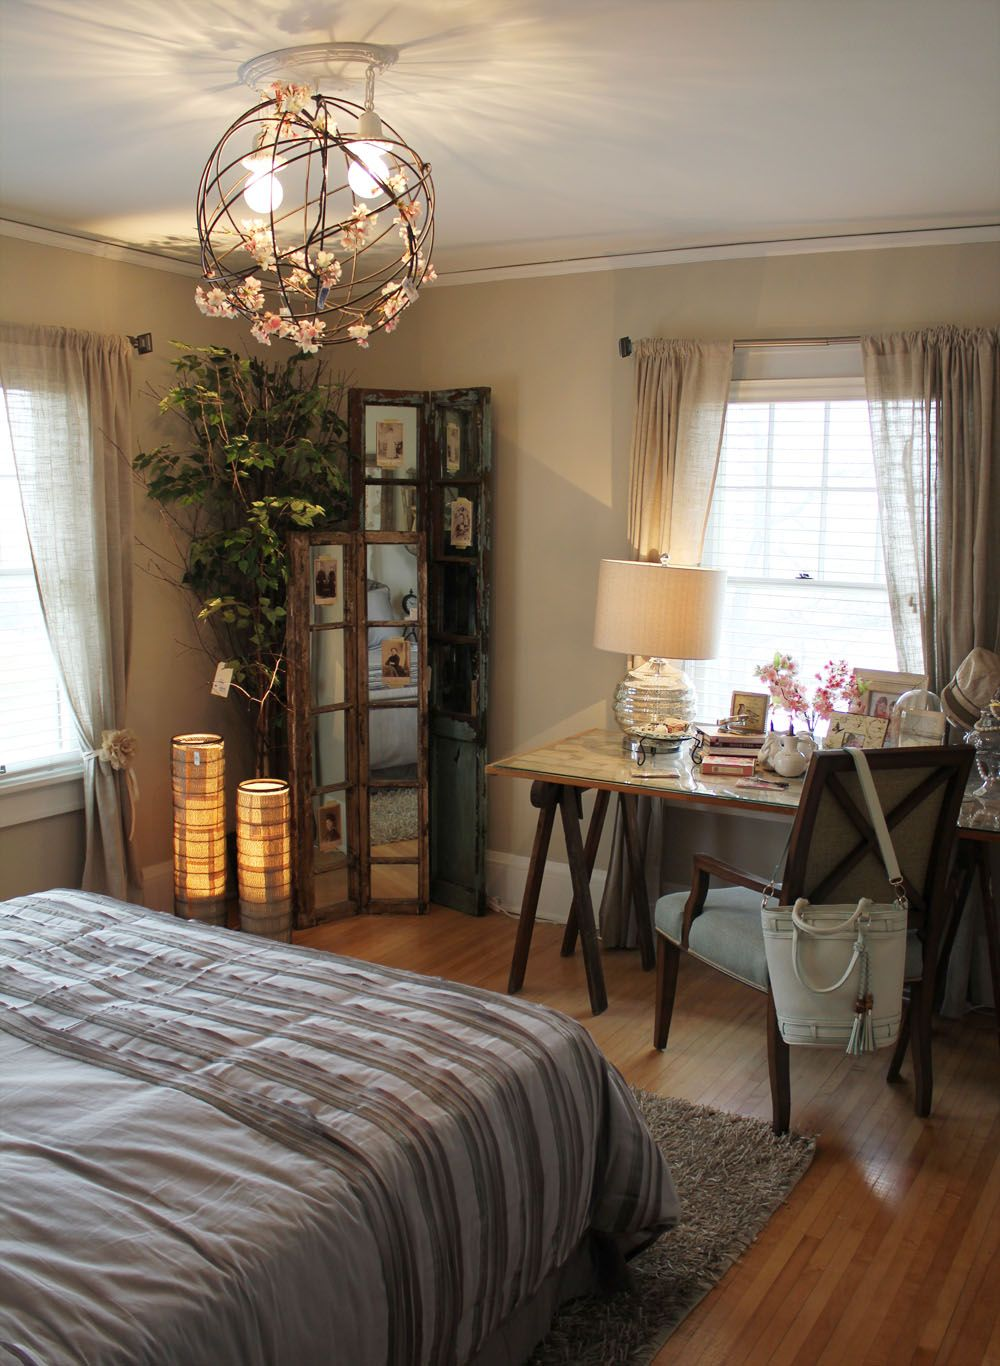 This Blog has some really cool, inexpensive ideas for decorating the home!